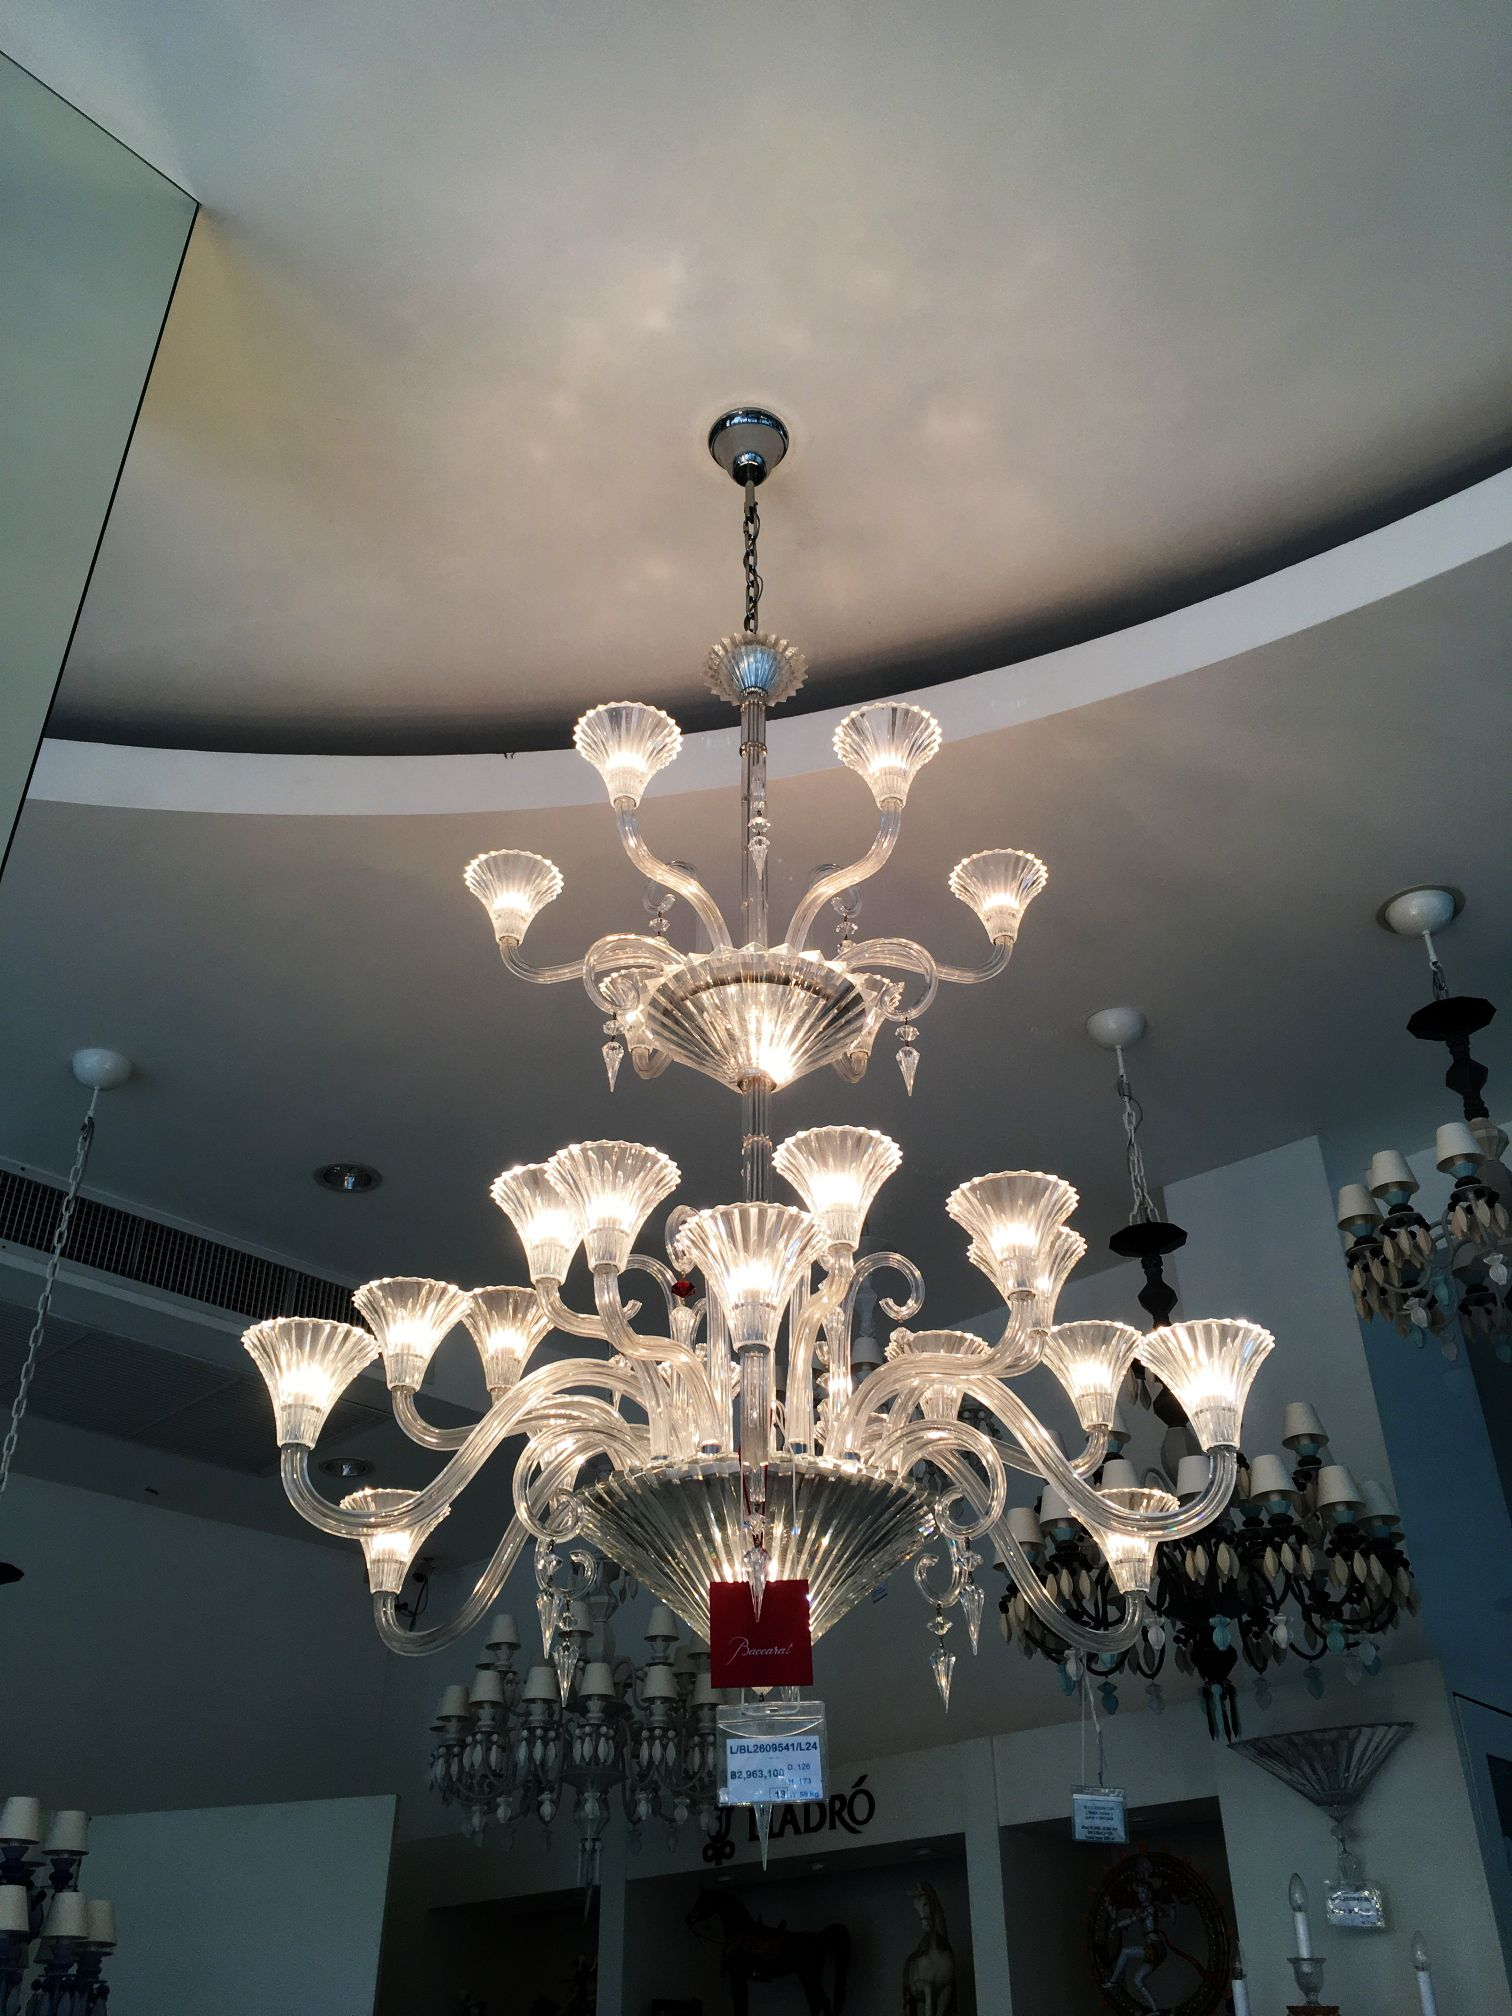 Baccarat crystal chandeliers mille nuits 24 lights baccarat baccarat crystal chandeliers mille nuits 24 lights arubaitofo Image collections